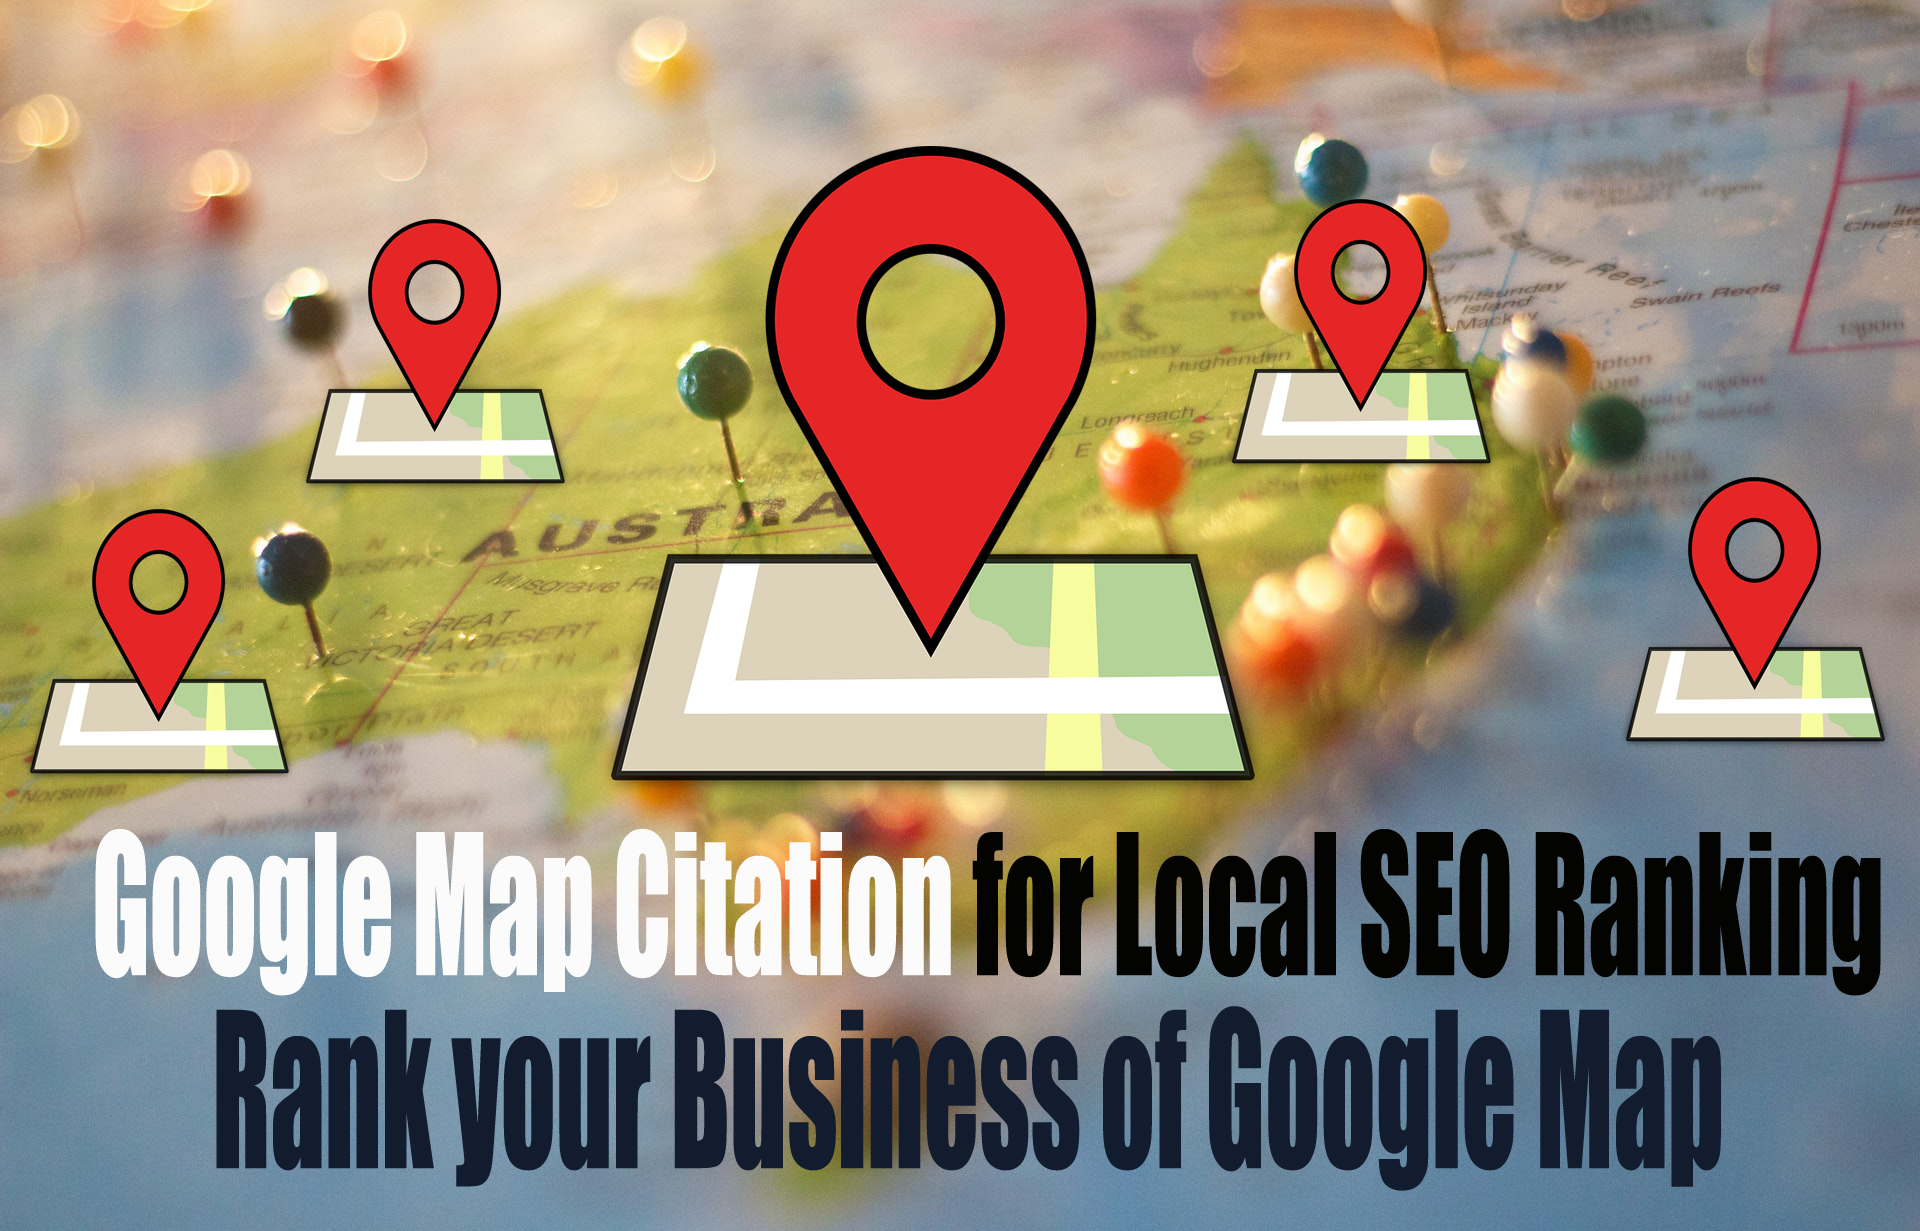 Increase Your Local Business I will Manually Create 50+ Google Map Citations for Local SEO Ranking